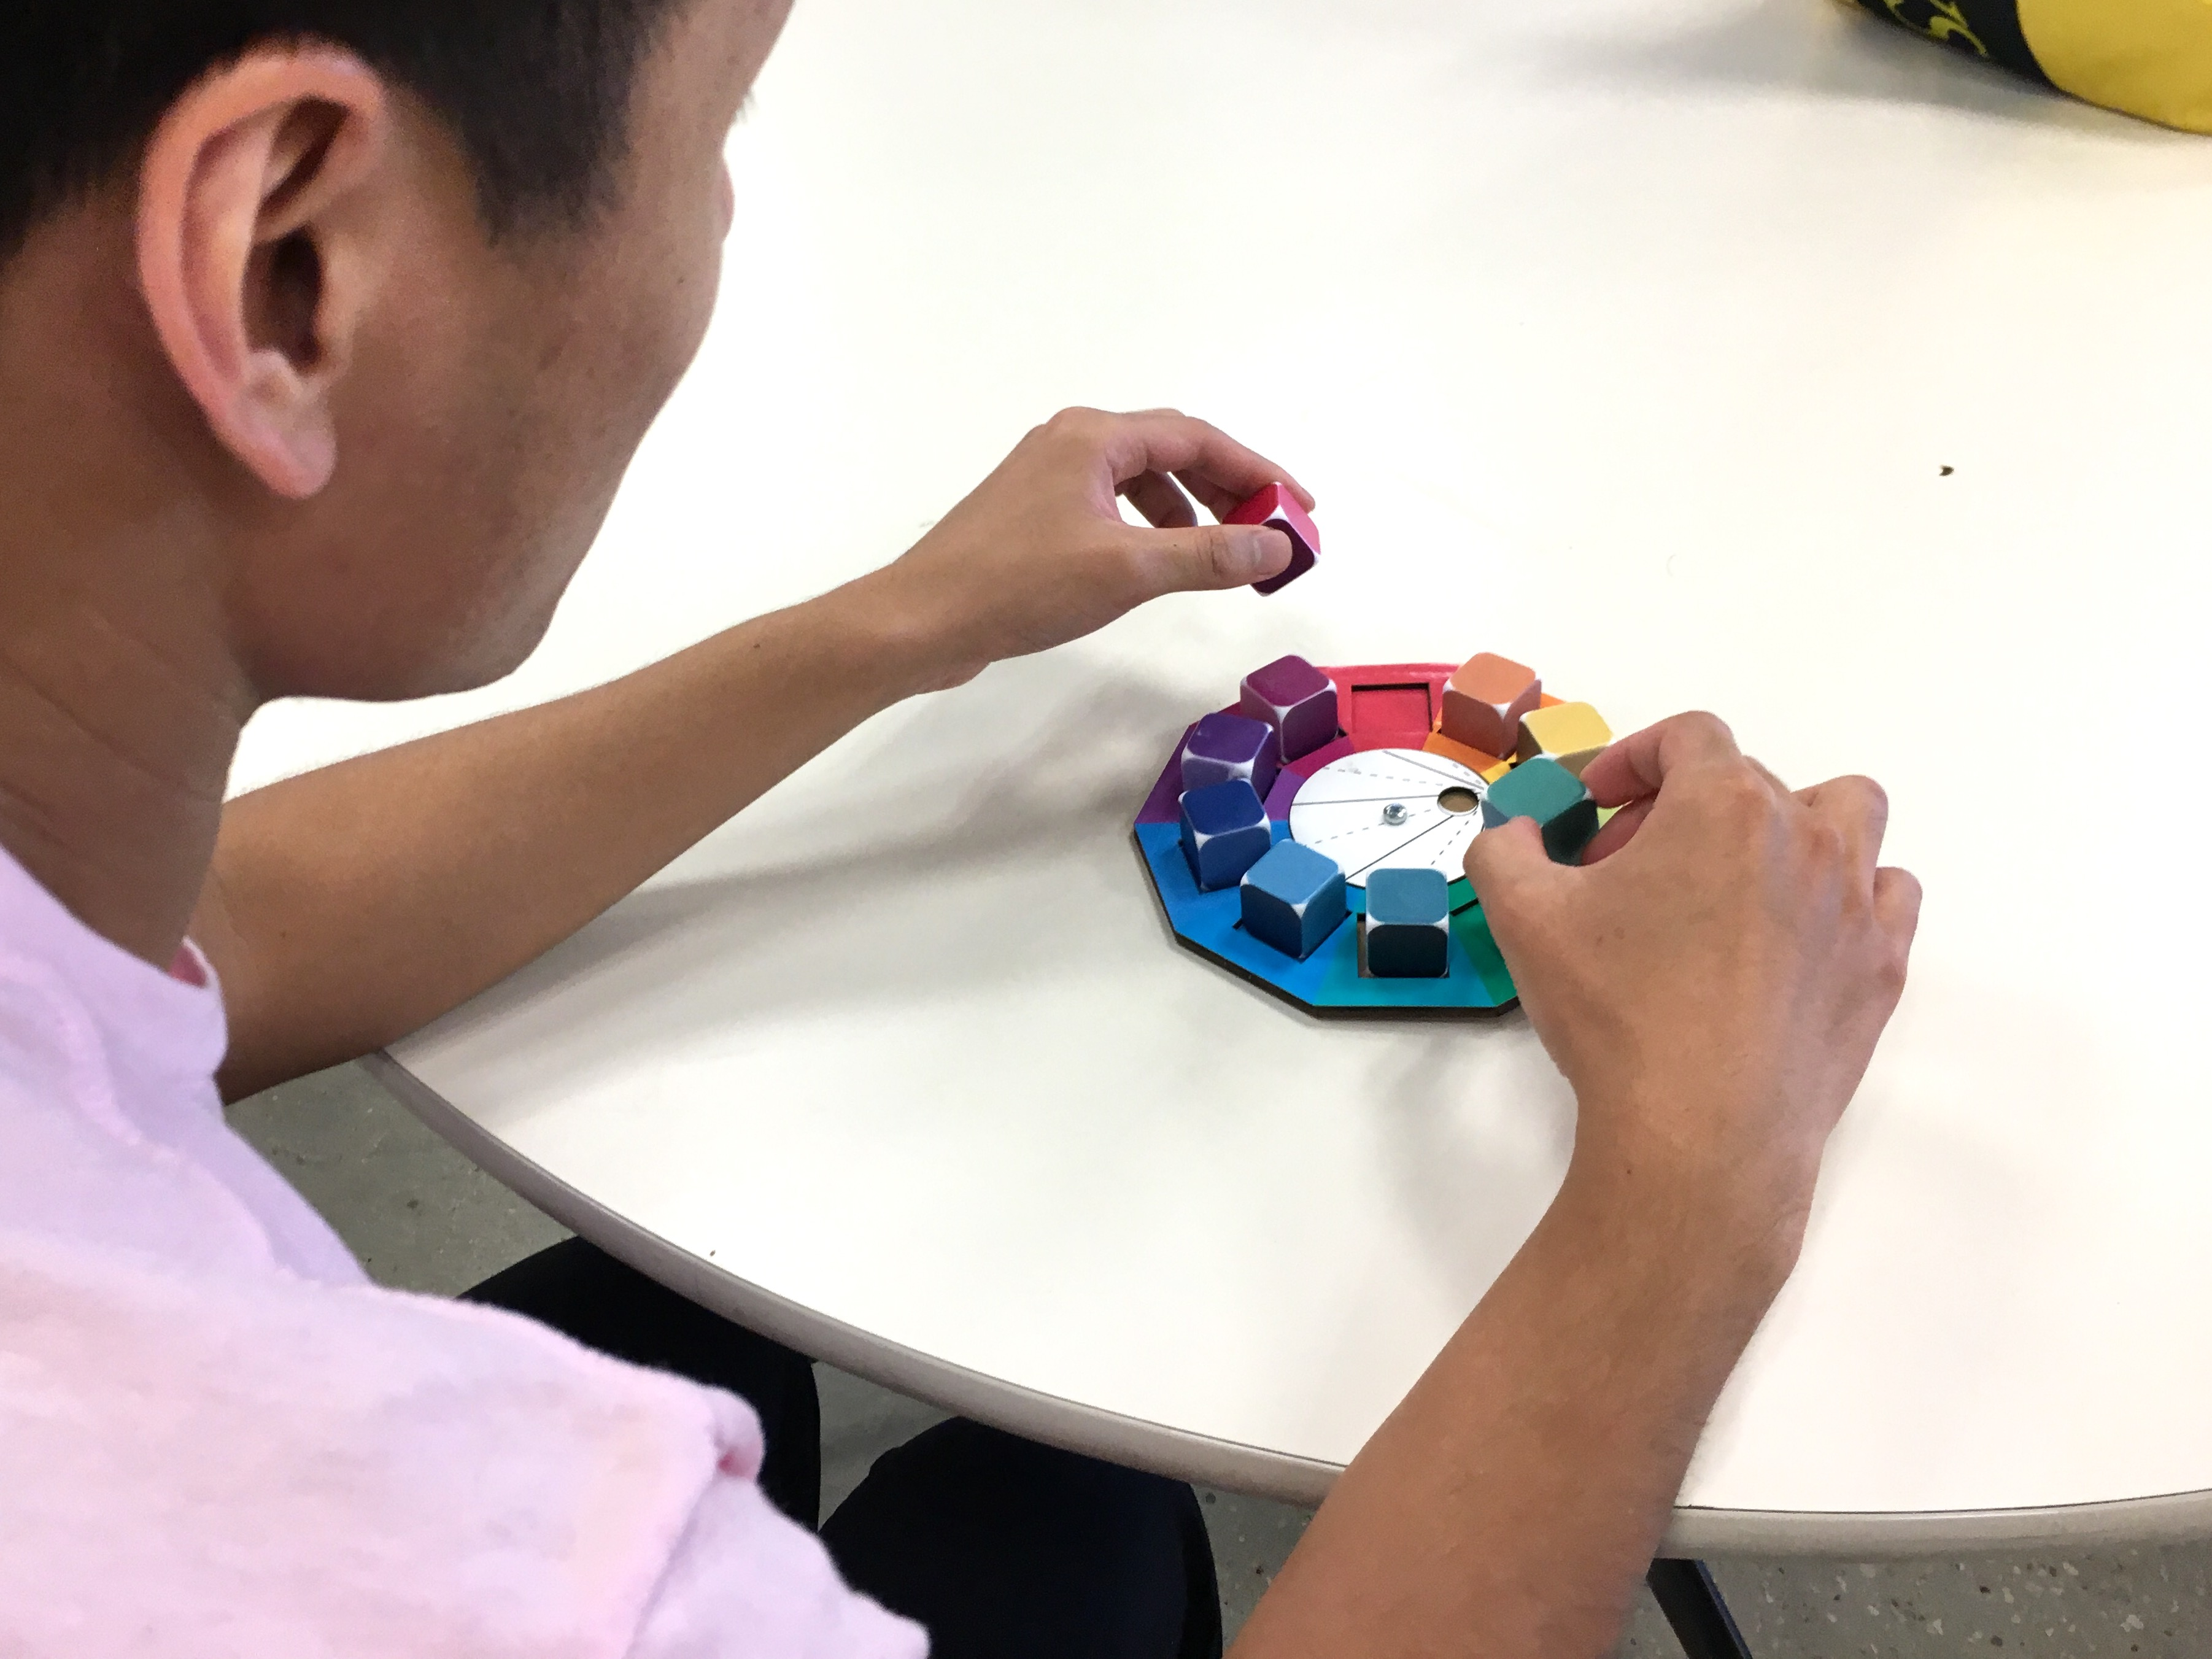 A person picks up colorful dice on a cardboard prototype of a spinning color wheel, testing it.